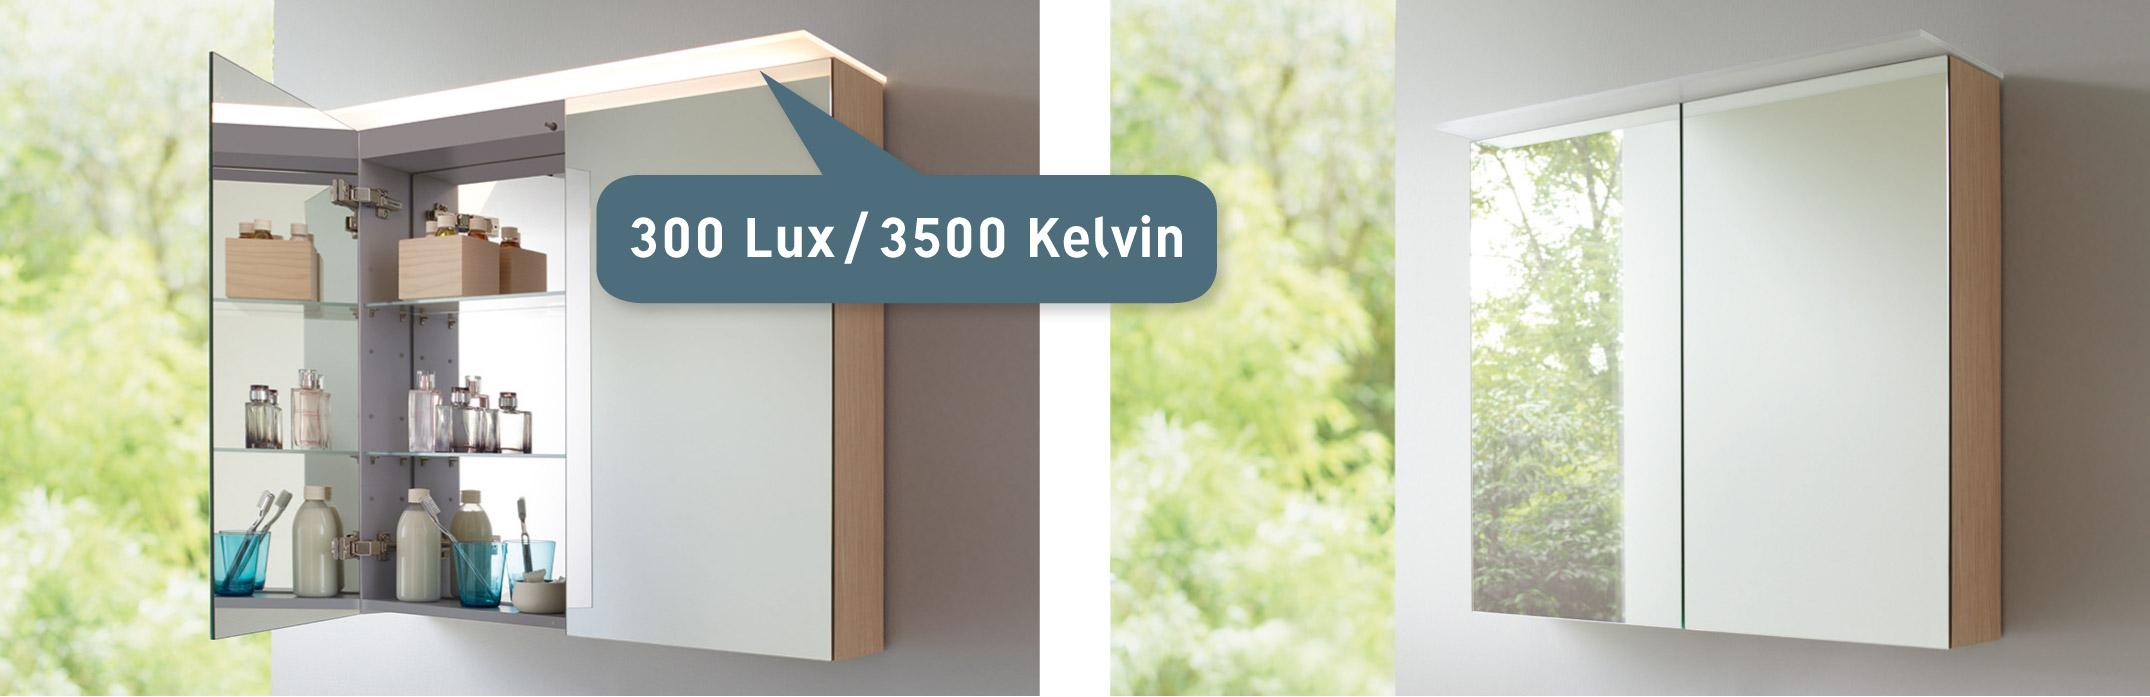 x-large_mirror-cabinet_300lux_info-bubble.jpg